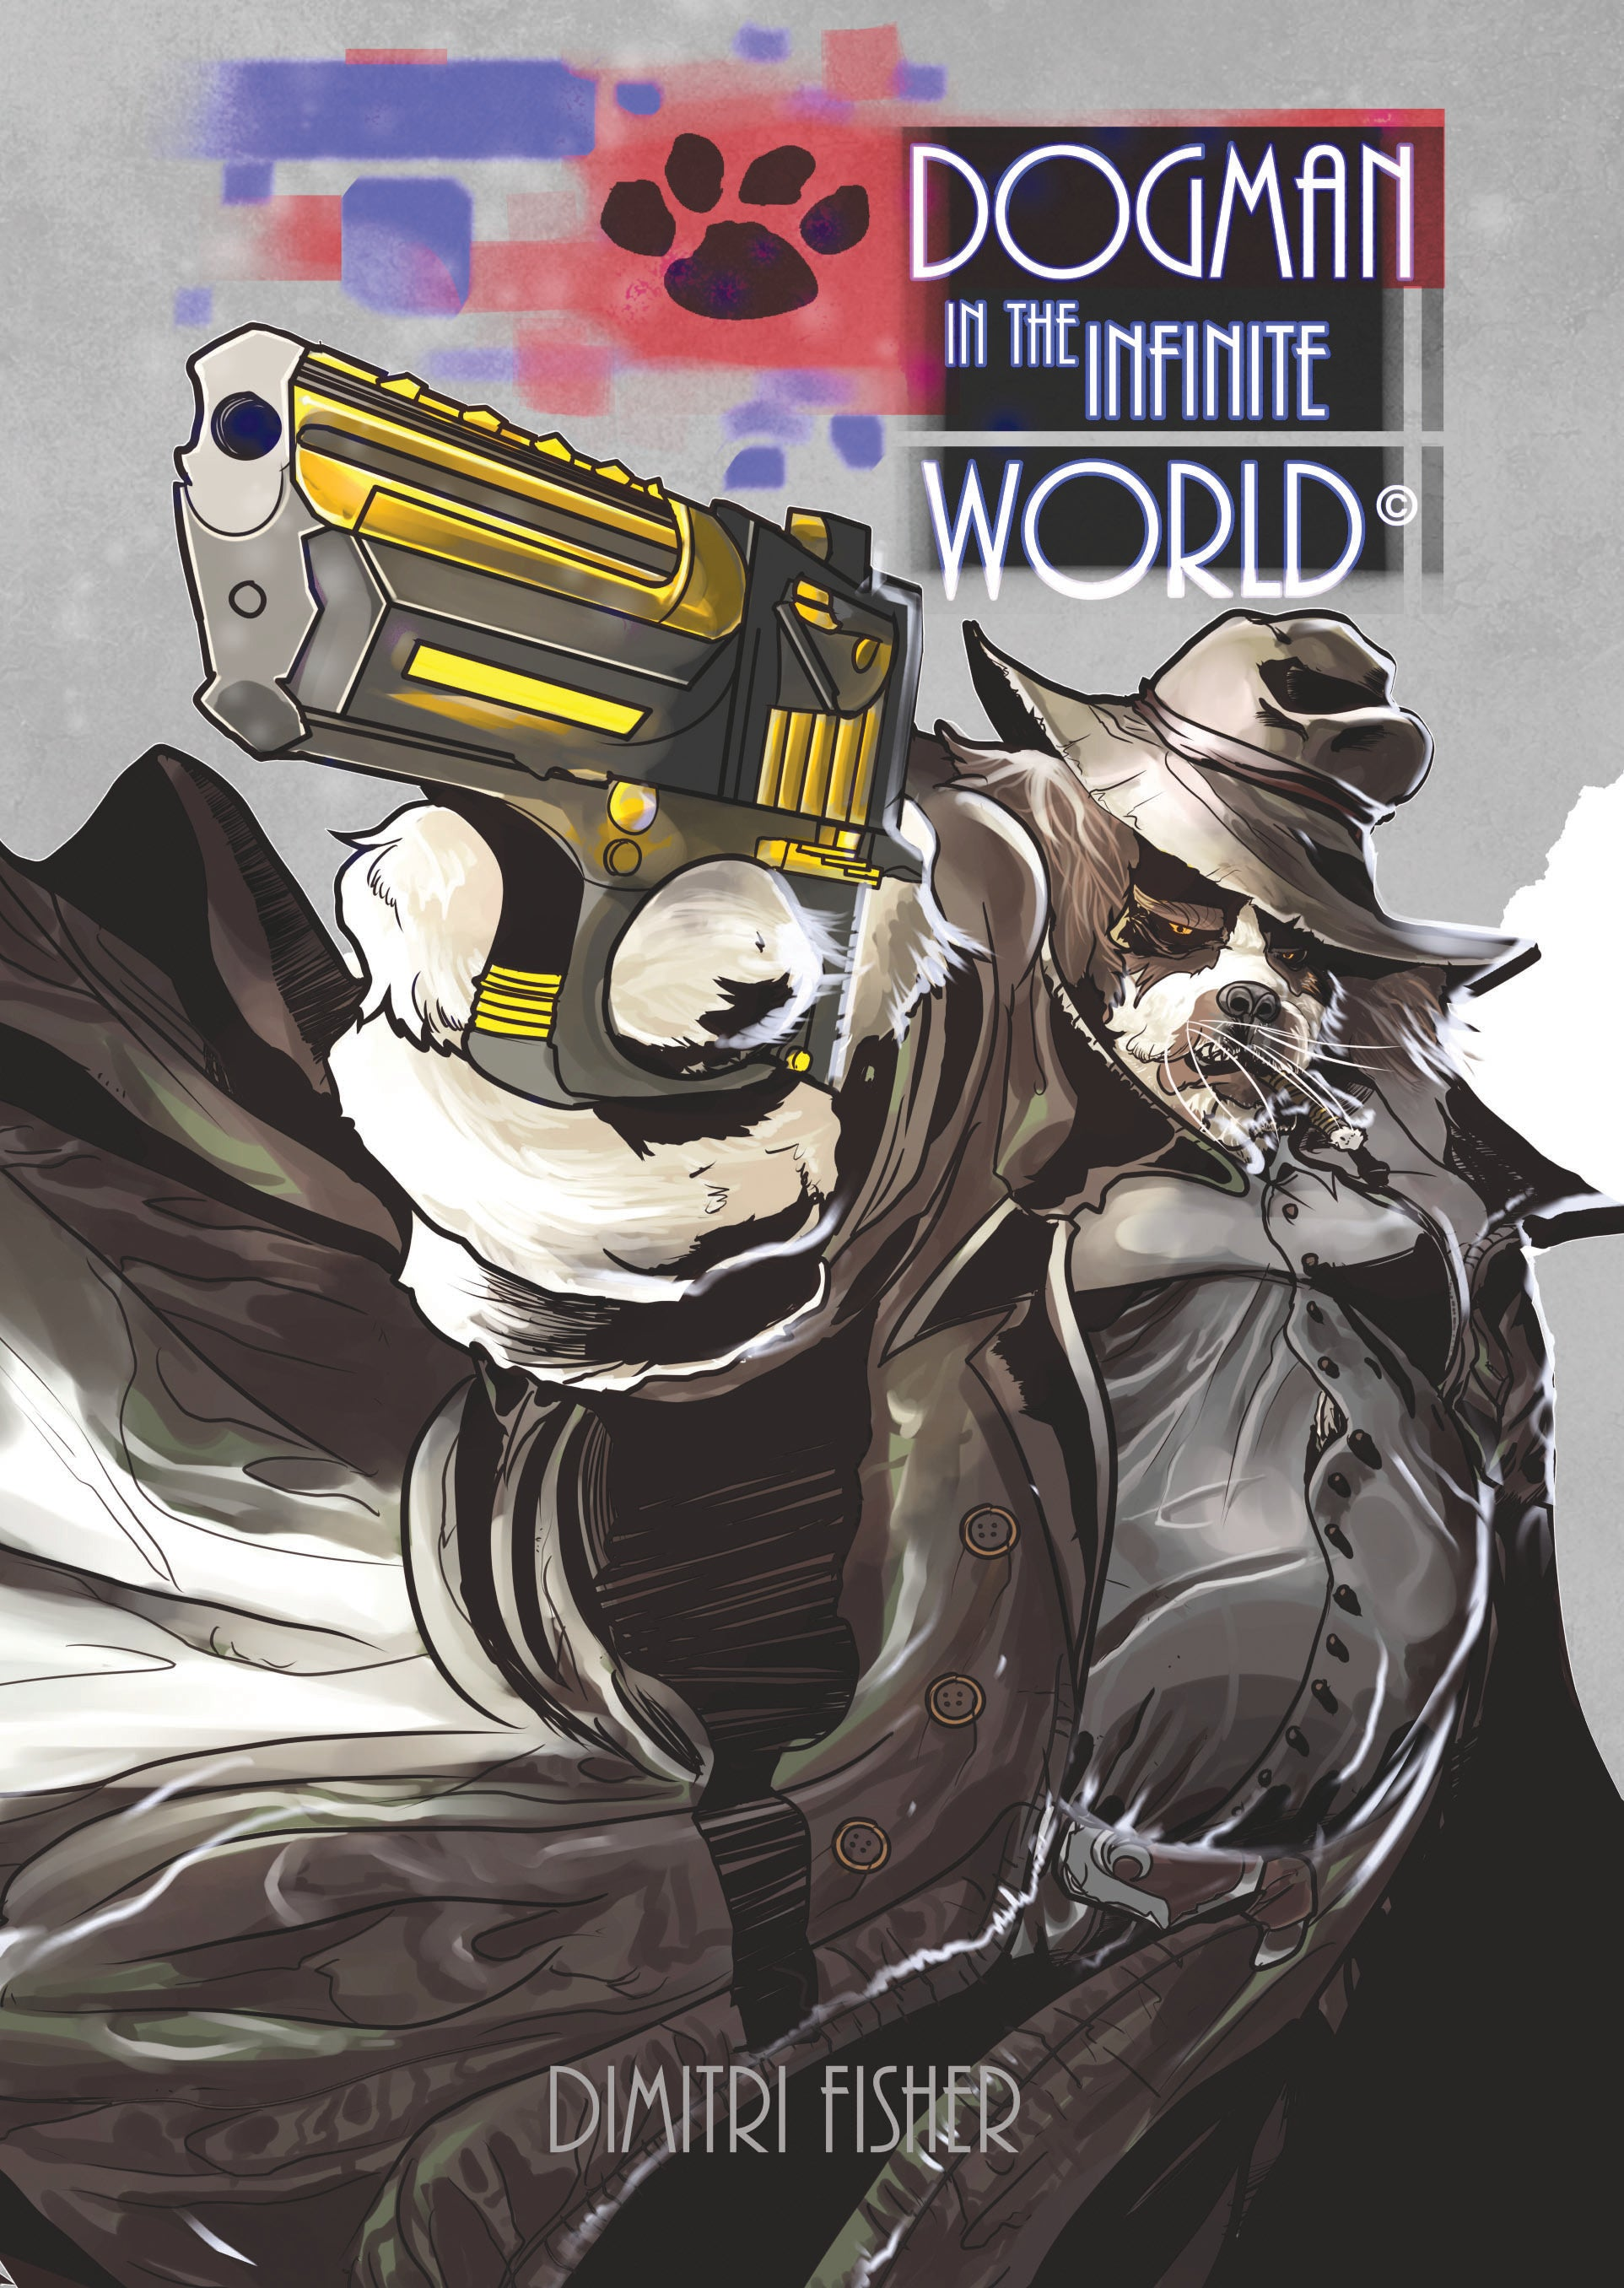 Dogman in the Infinite World Issue 1